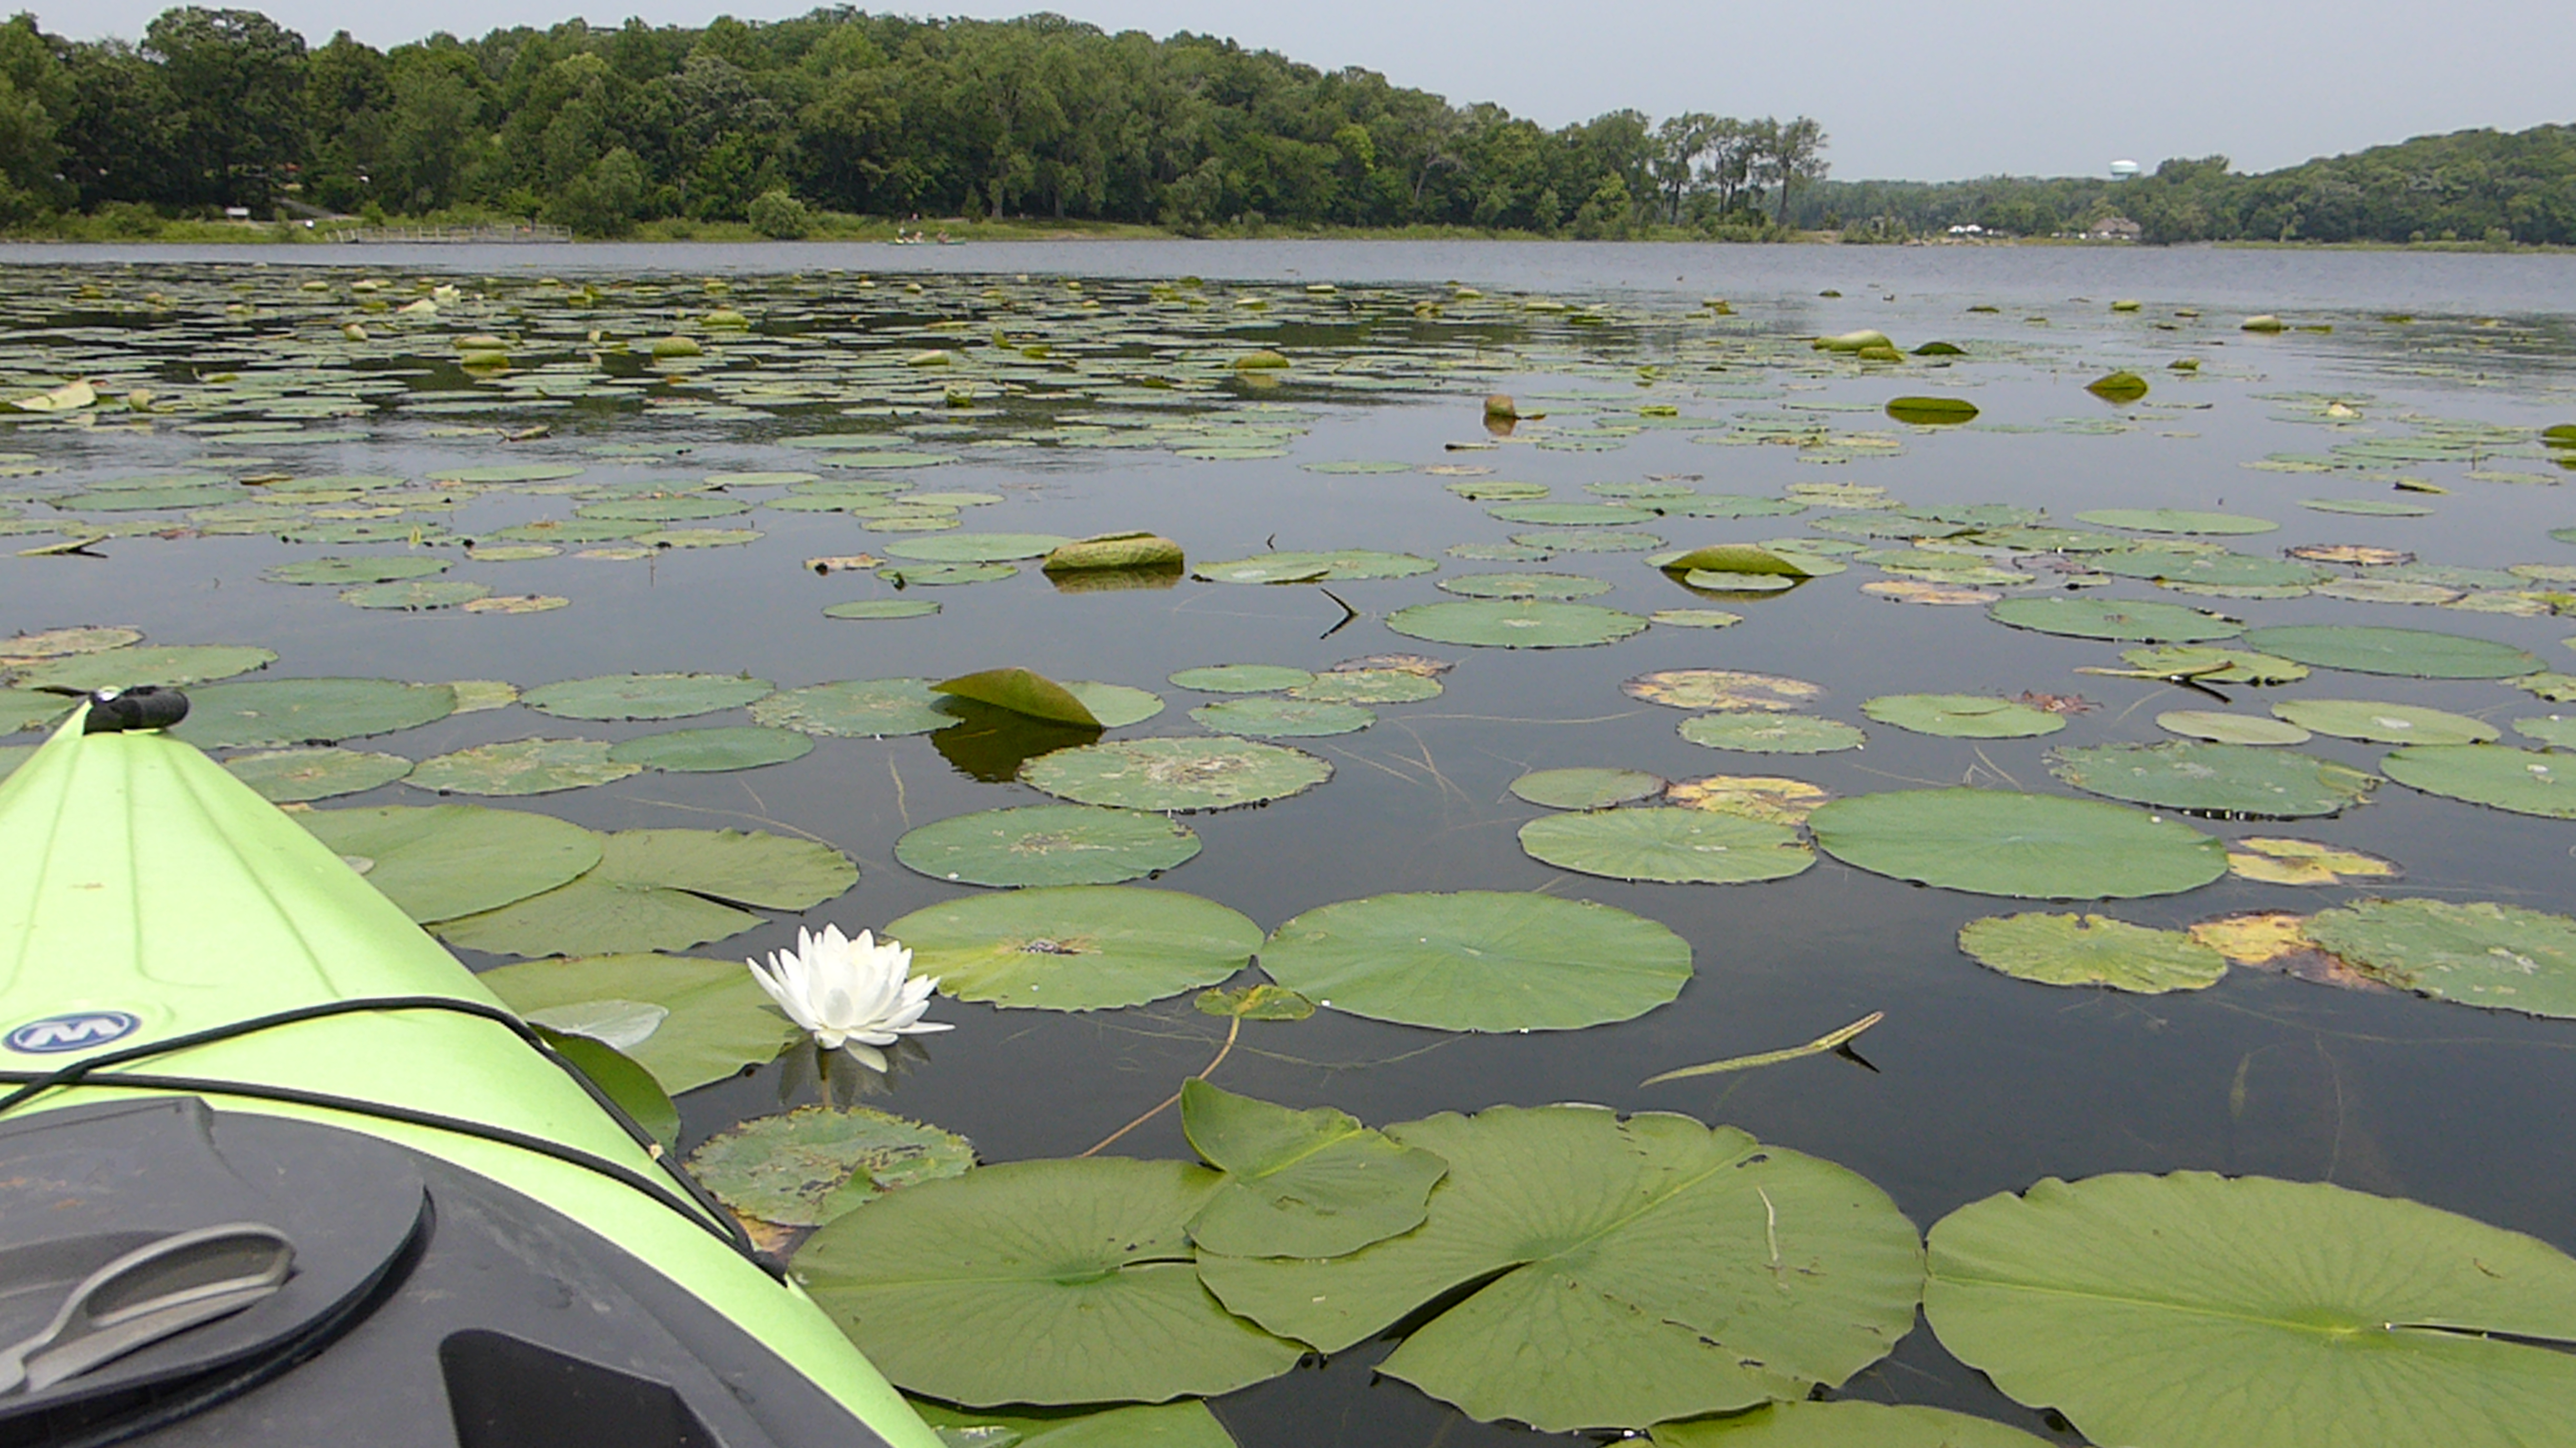 Kayak and lily pads